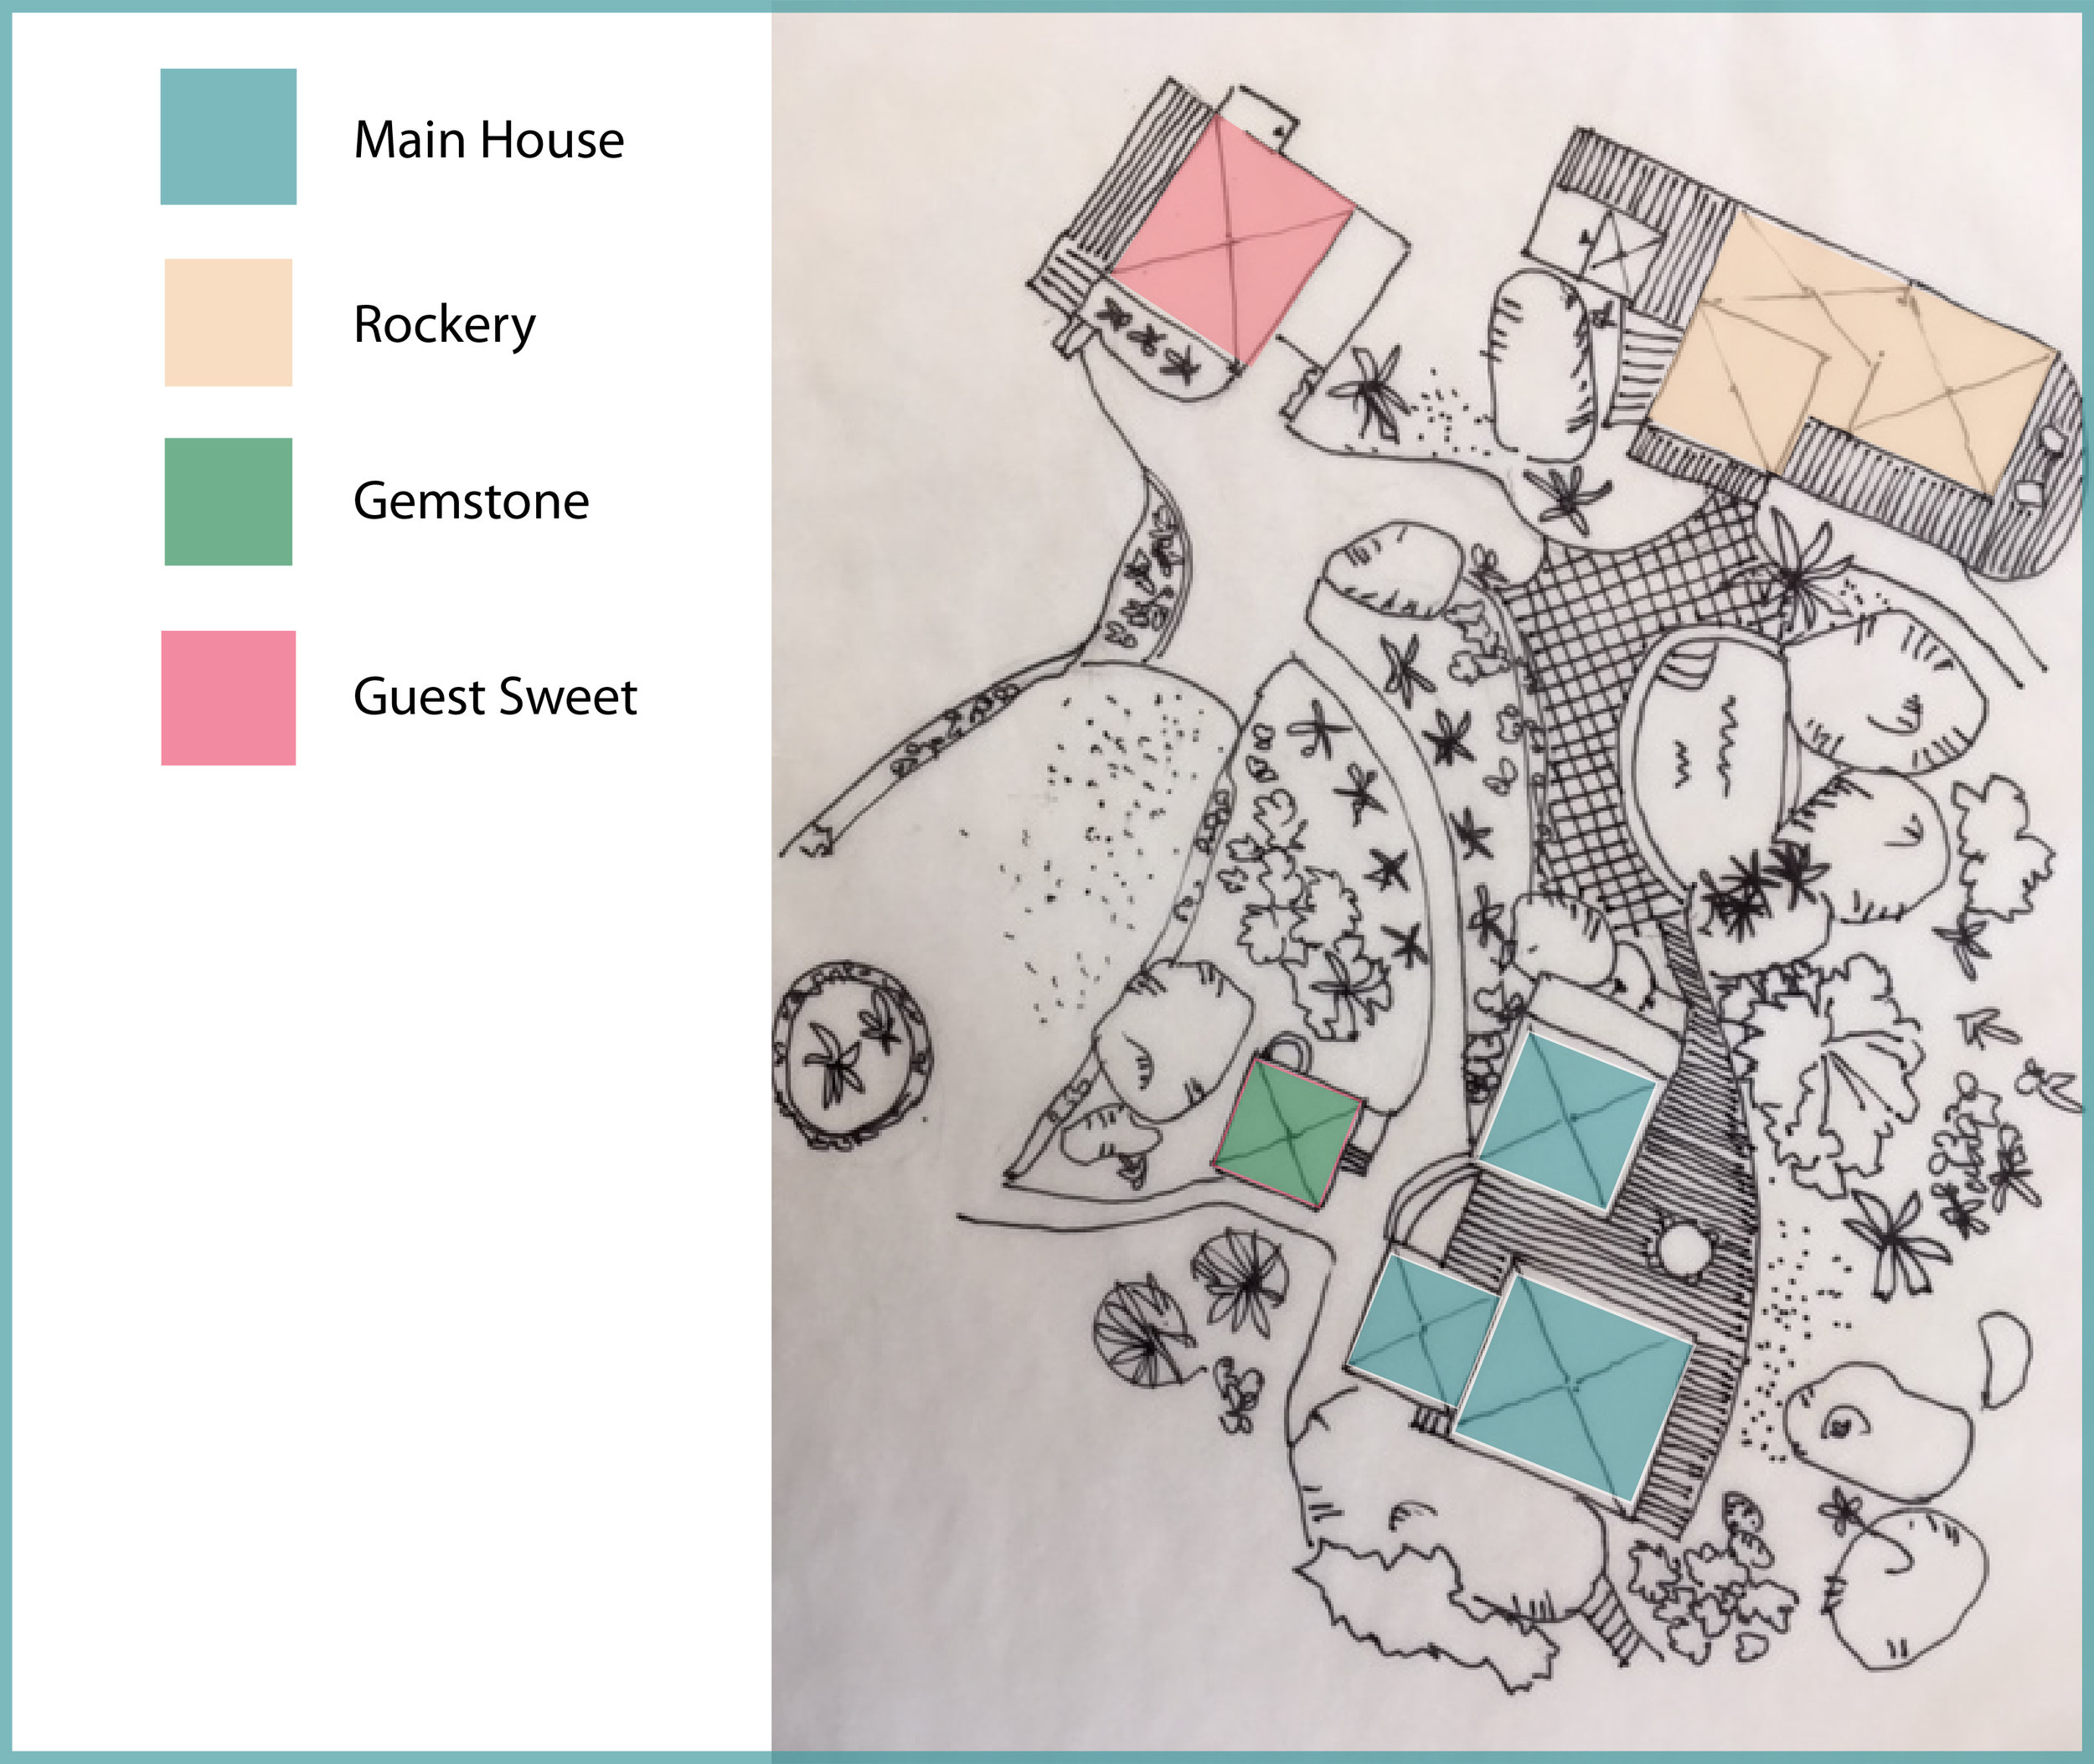 Rockmere layout - 5 bedrooms/5 bathrooms with 4 separate cottages(click image on left to enlarge)